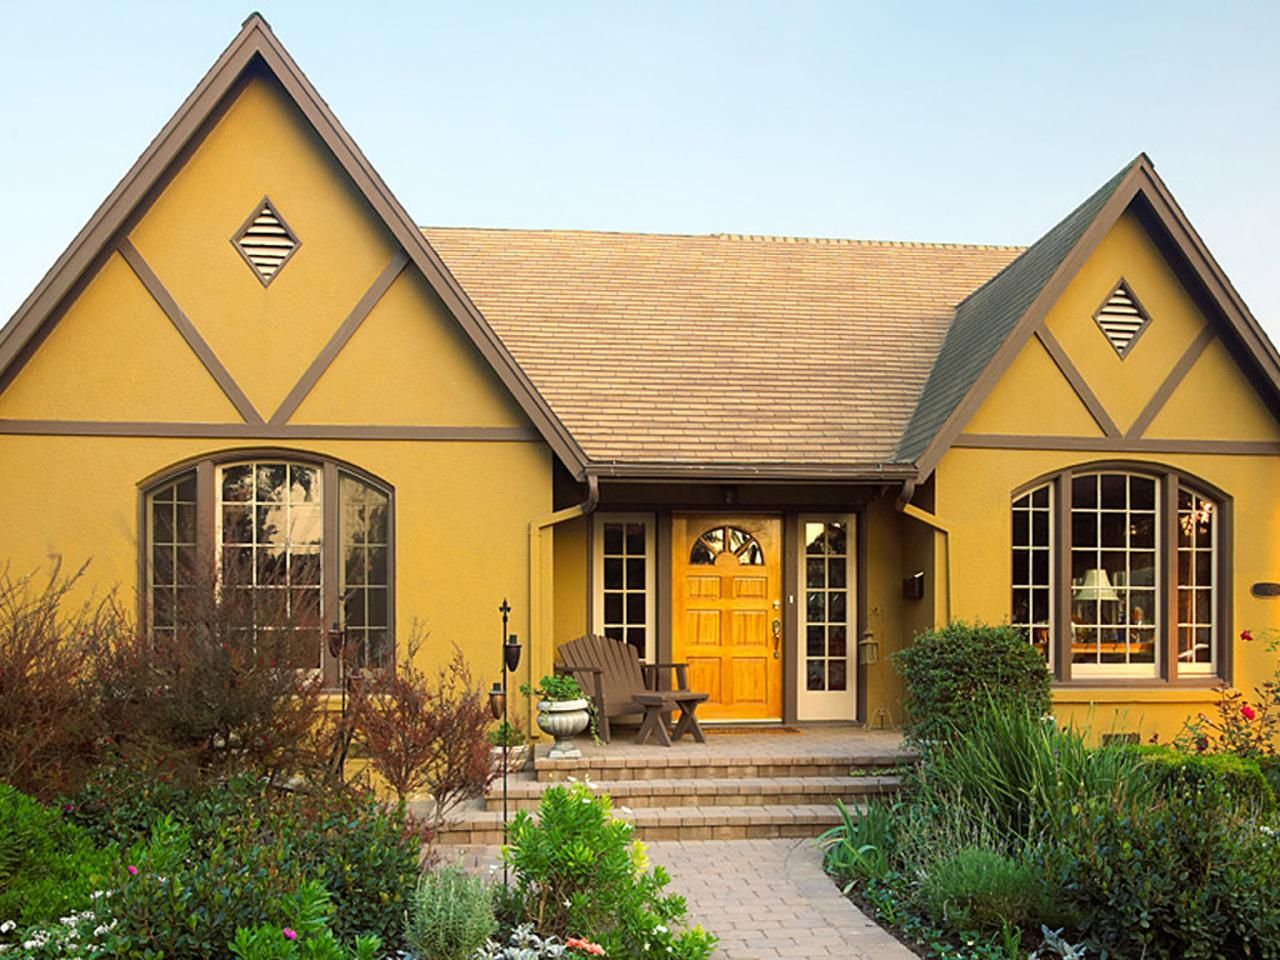 28 Inviting Home Exterior Color Ideas | Tudor style, Door paint ...